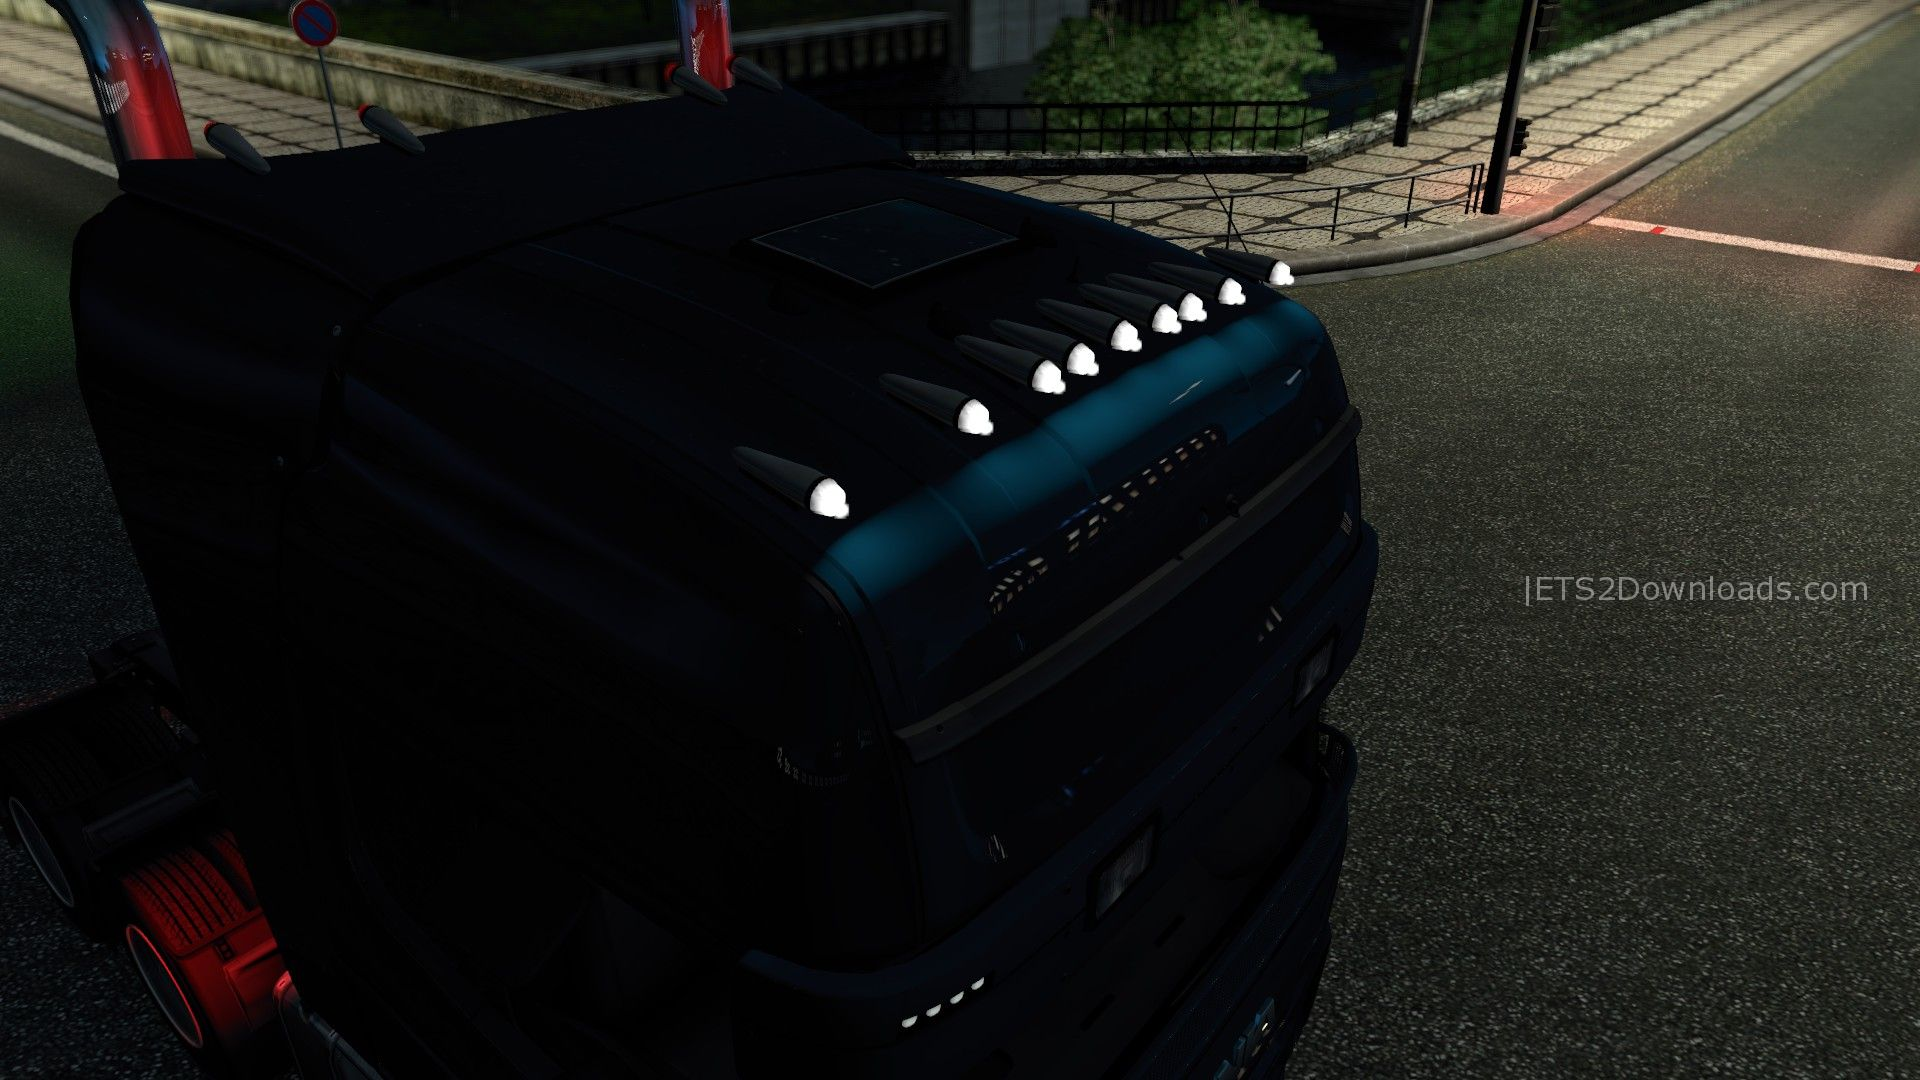 rooflights-for-scania-rjl-1